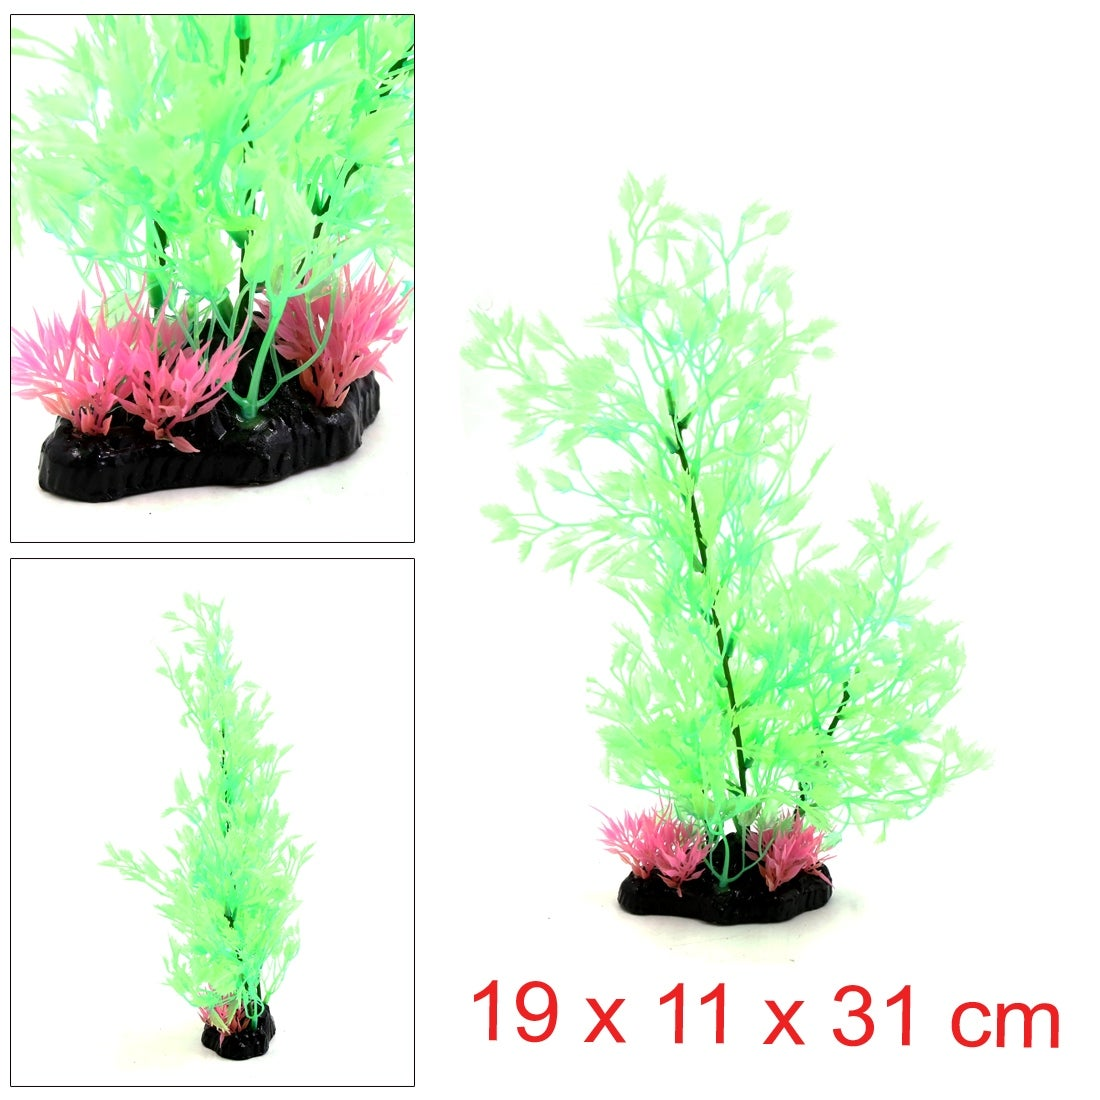 12 Plastic Decorative Plant Aquarium Terrarium Reptiles Tank Decor 19 X 11 X 31 Cm 7 48 X 4 33 X 12 20 L W H On Sale Overstock 24152632